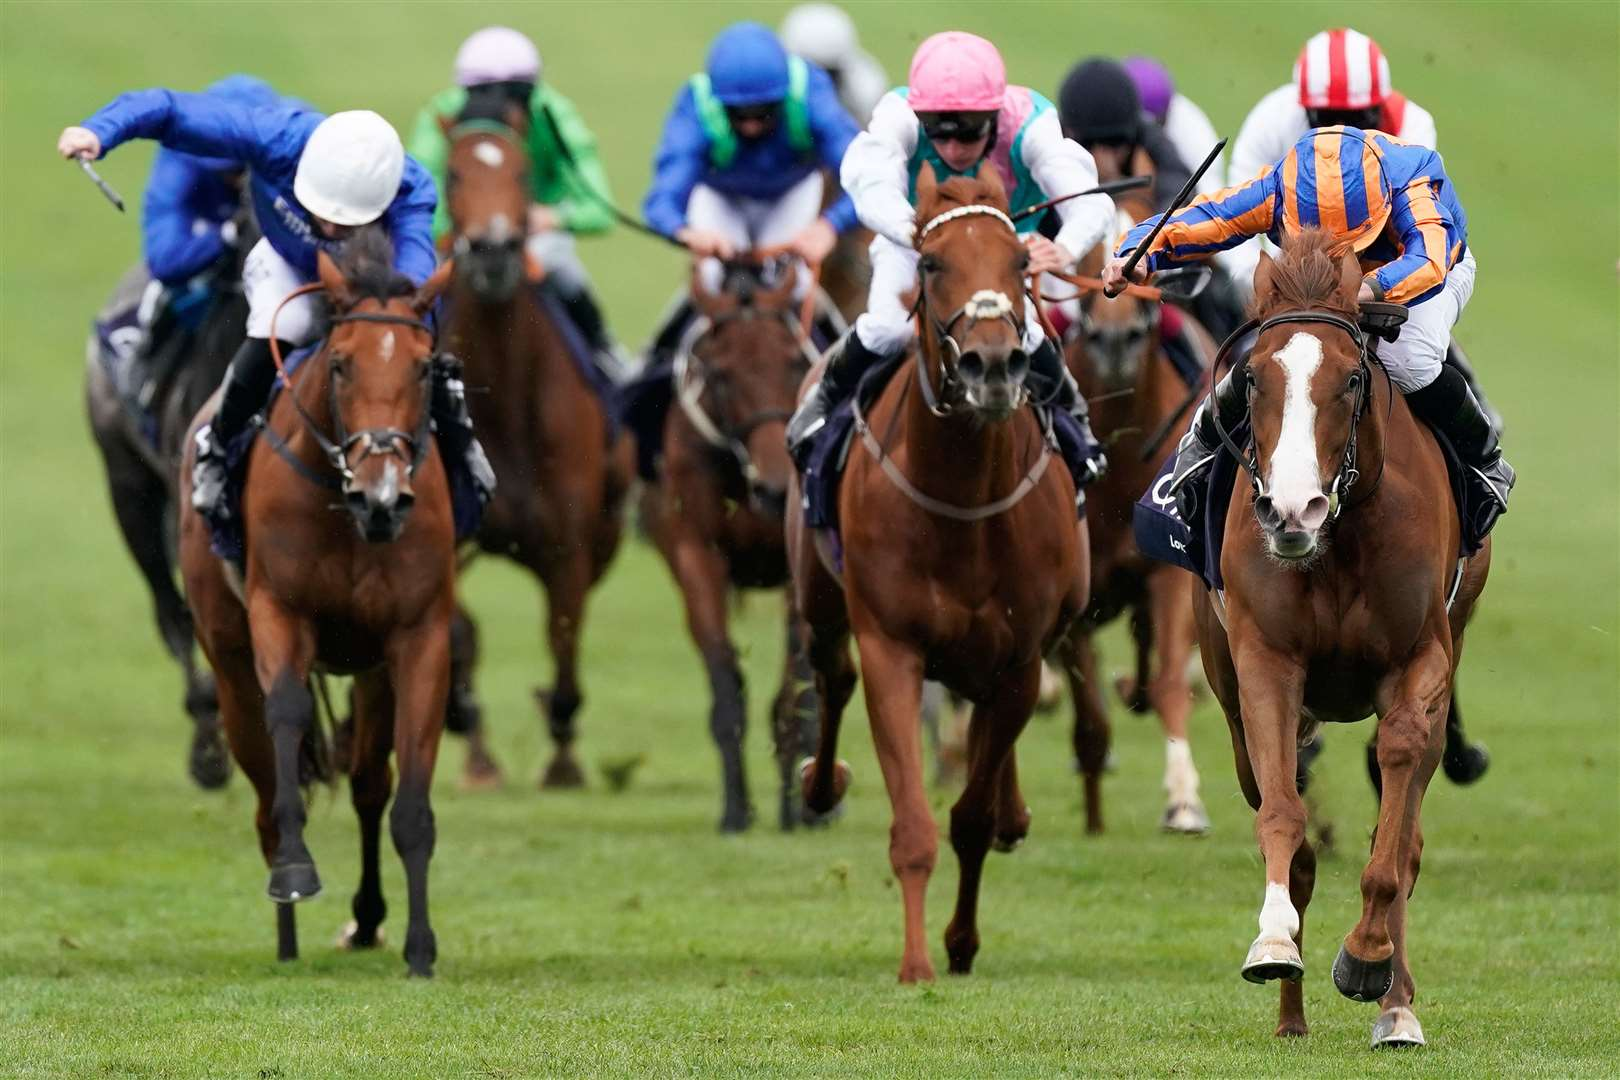 NEWMARKET, ENGLAND - JUNE 07: Ryan Moore riding Love (R, blue/orange) win The Qipco 1000 Guineas Stakes at Newmarket Racecourse on June 07, 2020 in Newmarket, England. (Photo by Alan Crowhurst/Getty Images). (36301666)